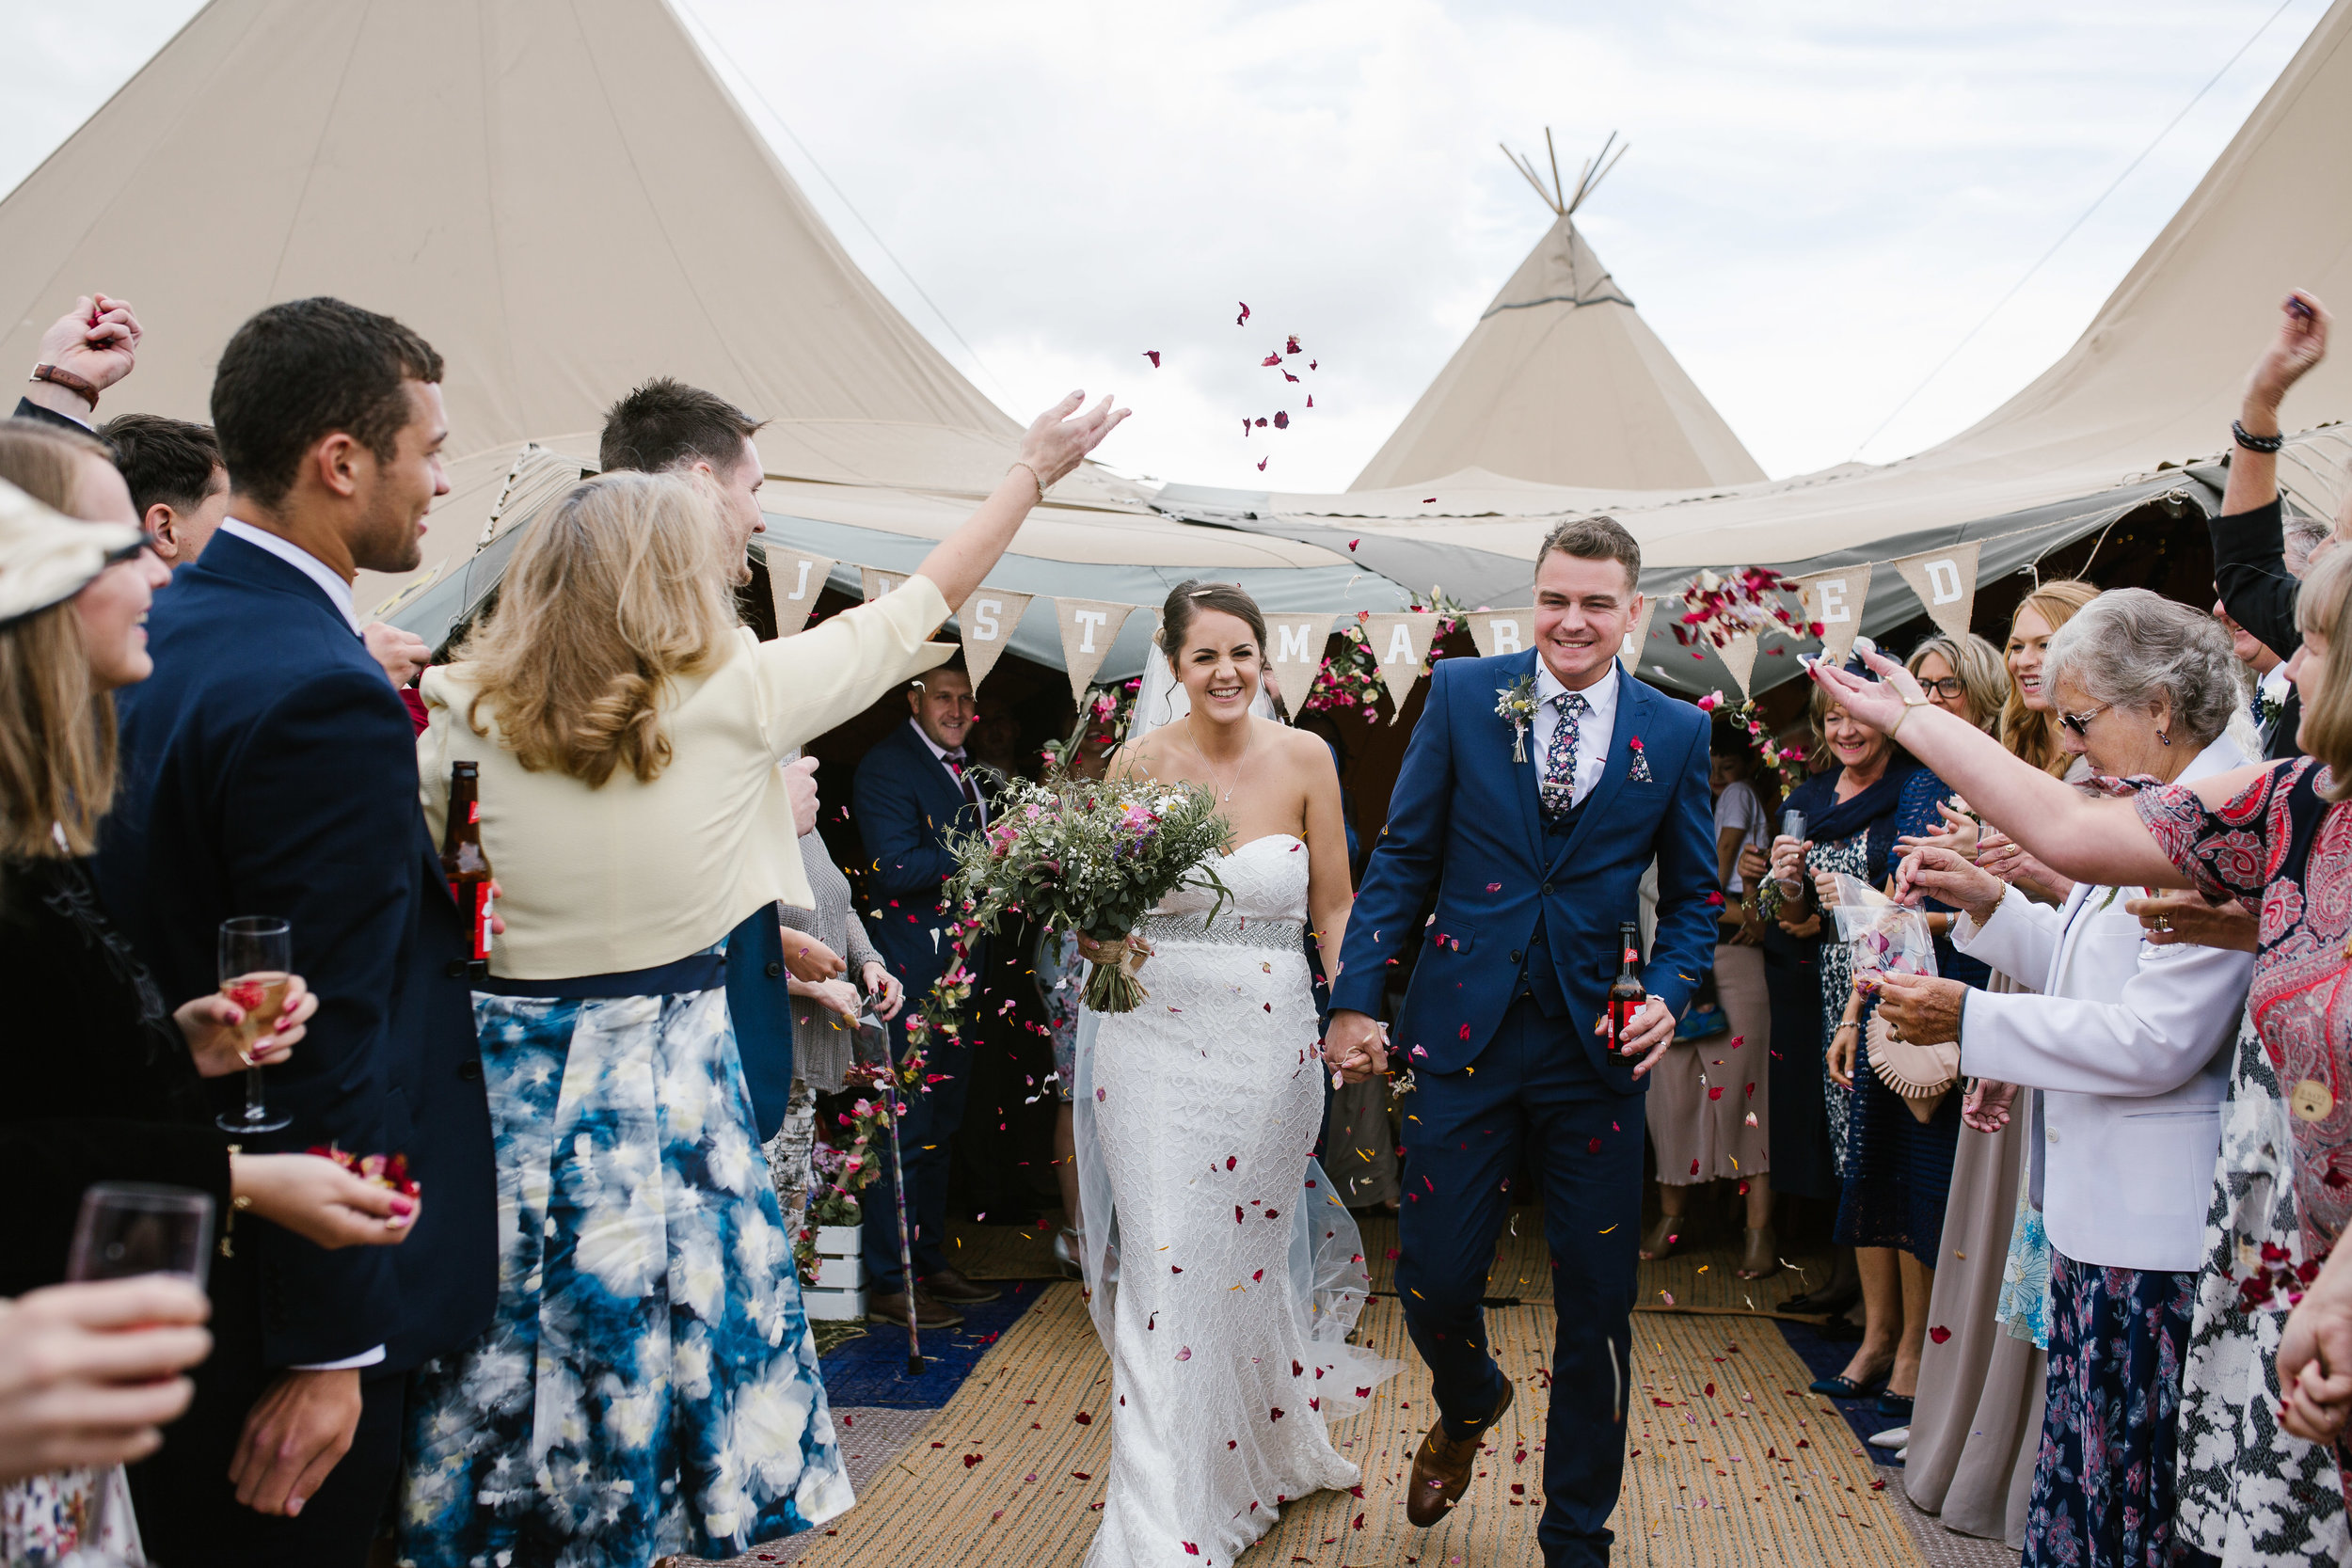 teepee wedding, tipi wedding, tipi wedding photographer, village hall wedding, birmingham wedding photographer, manchester wedding photographer, DIY wedding-146.jpg